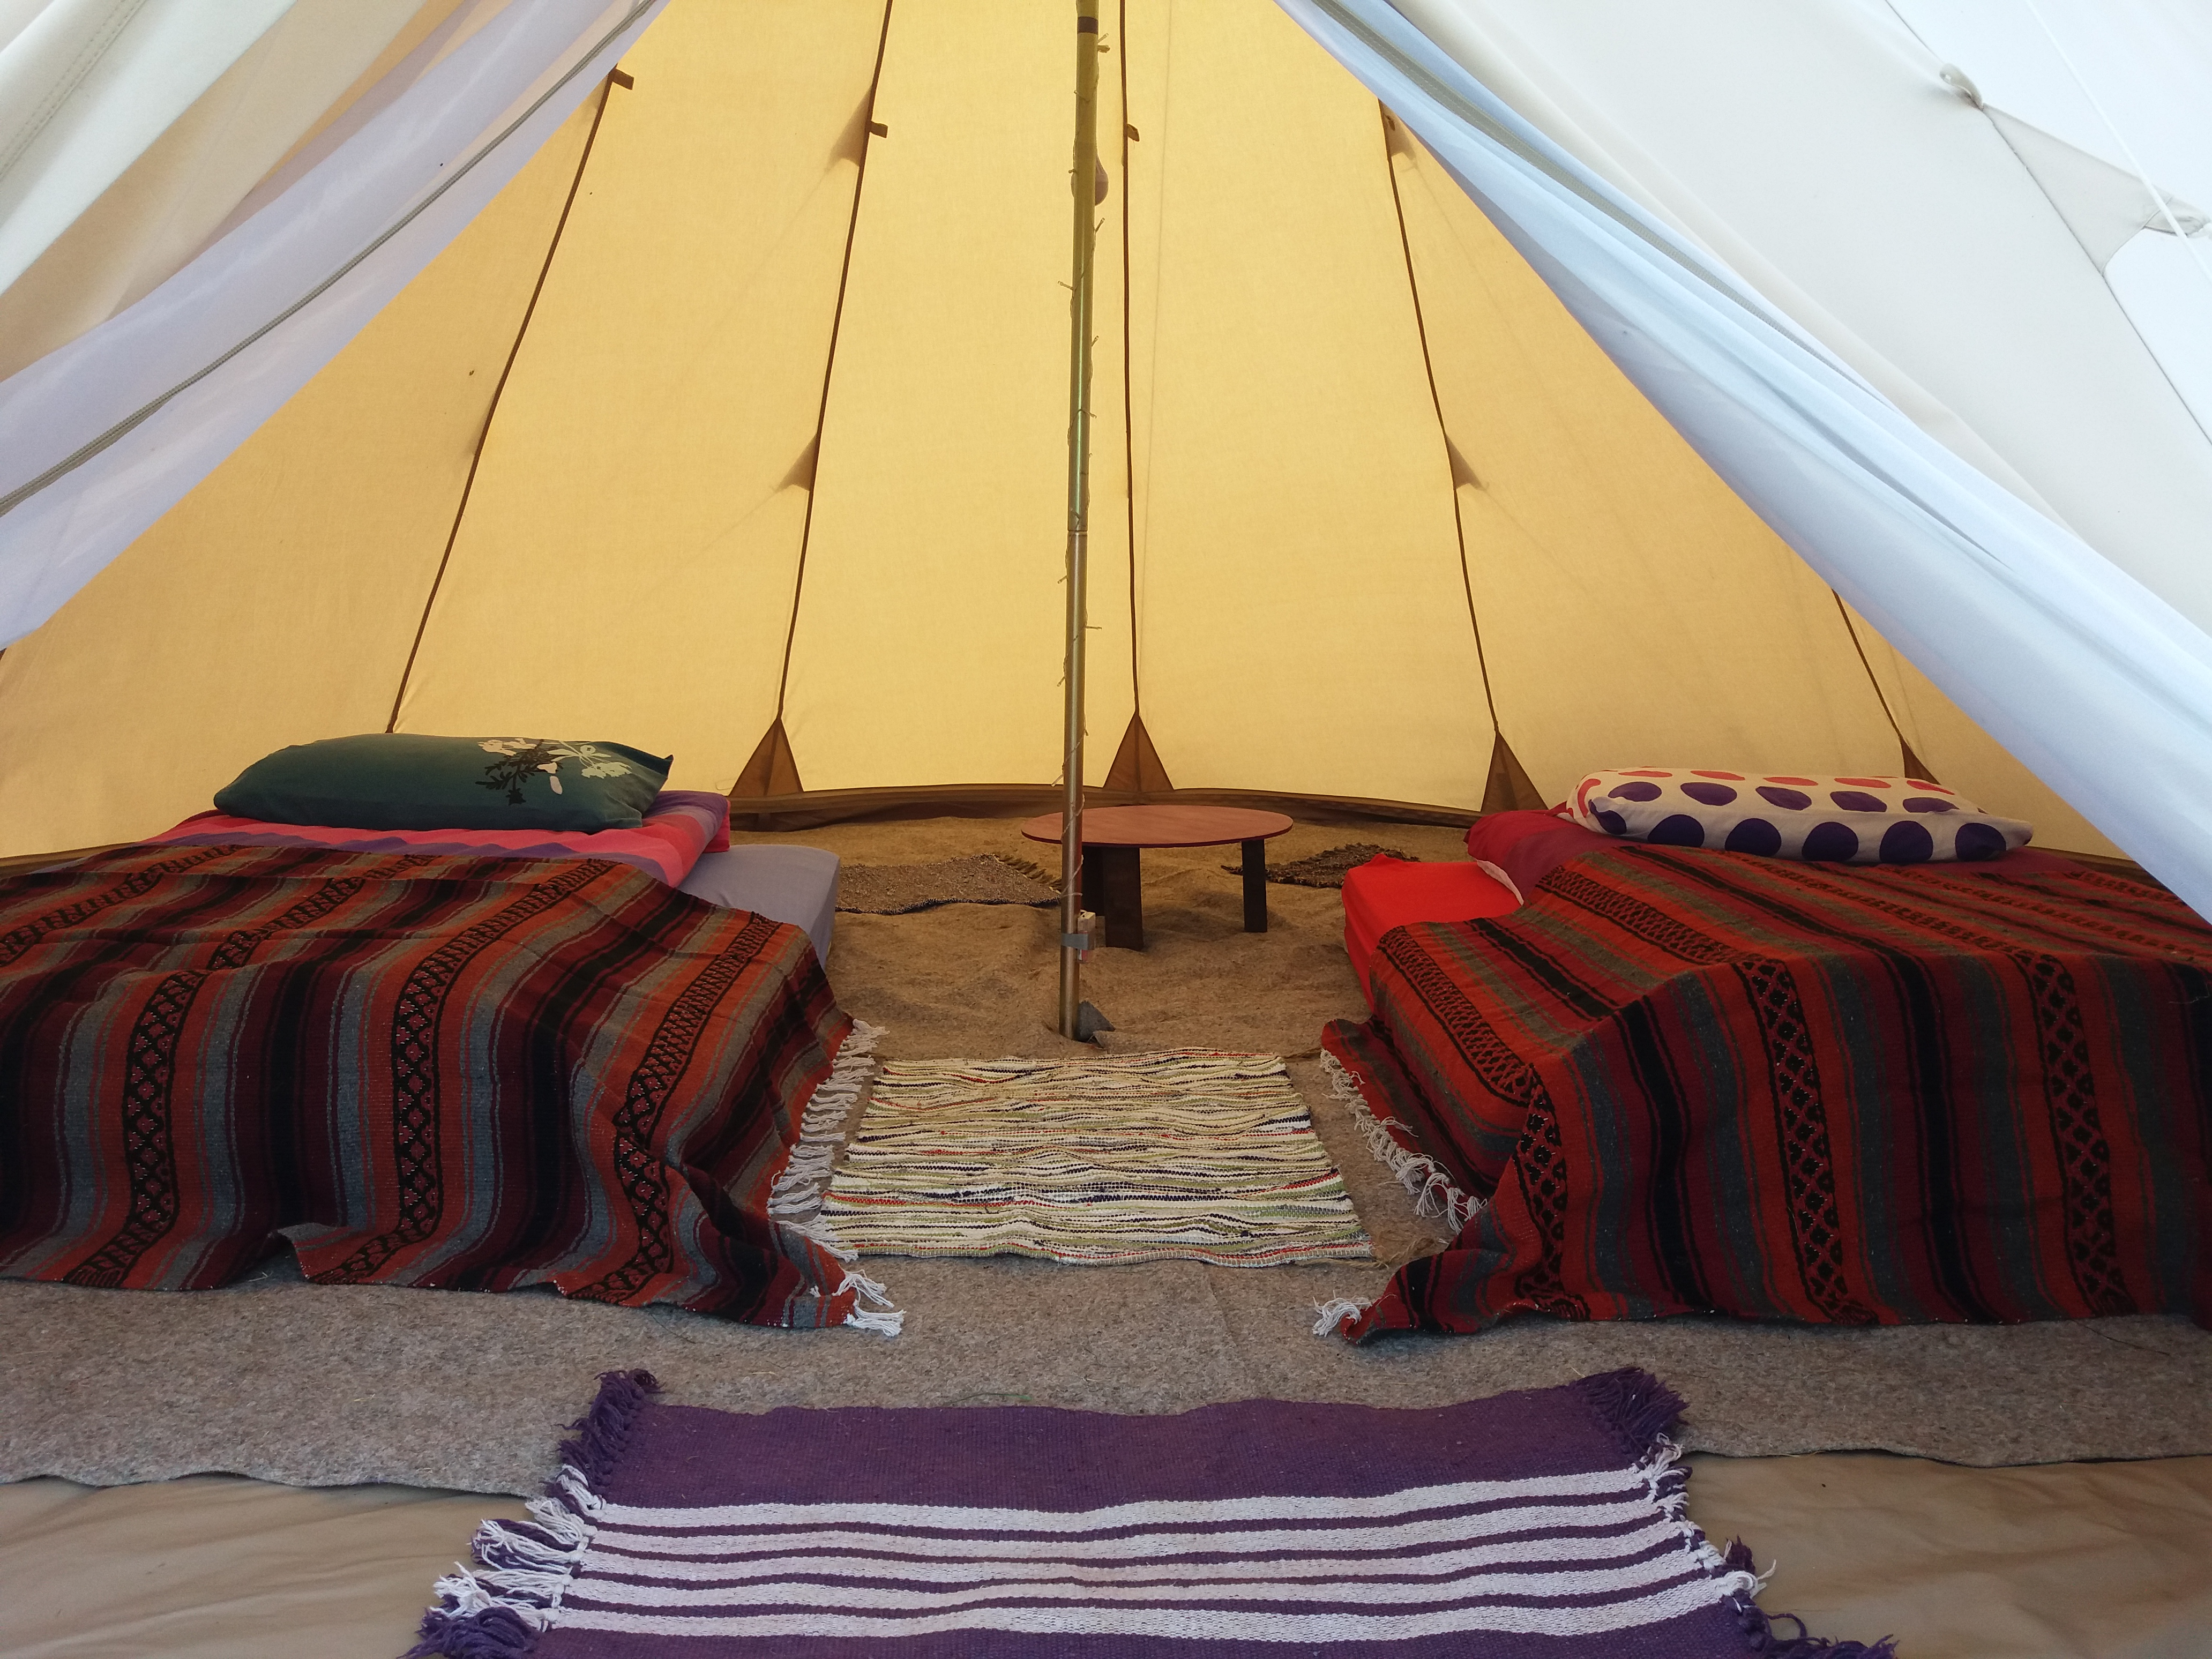 Tipi tents. img_0708 20161021_152159 & Isle of Wight Festival 2018 | Eveu0027s Tipis